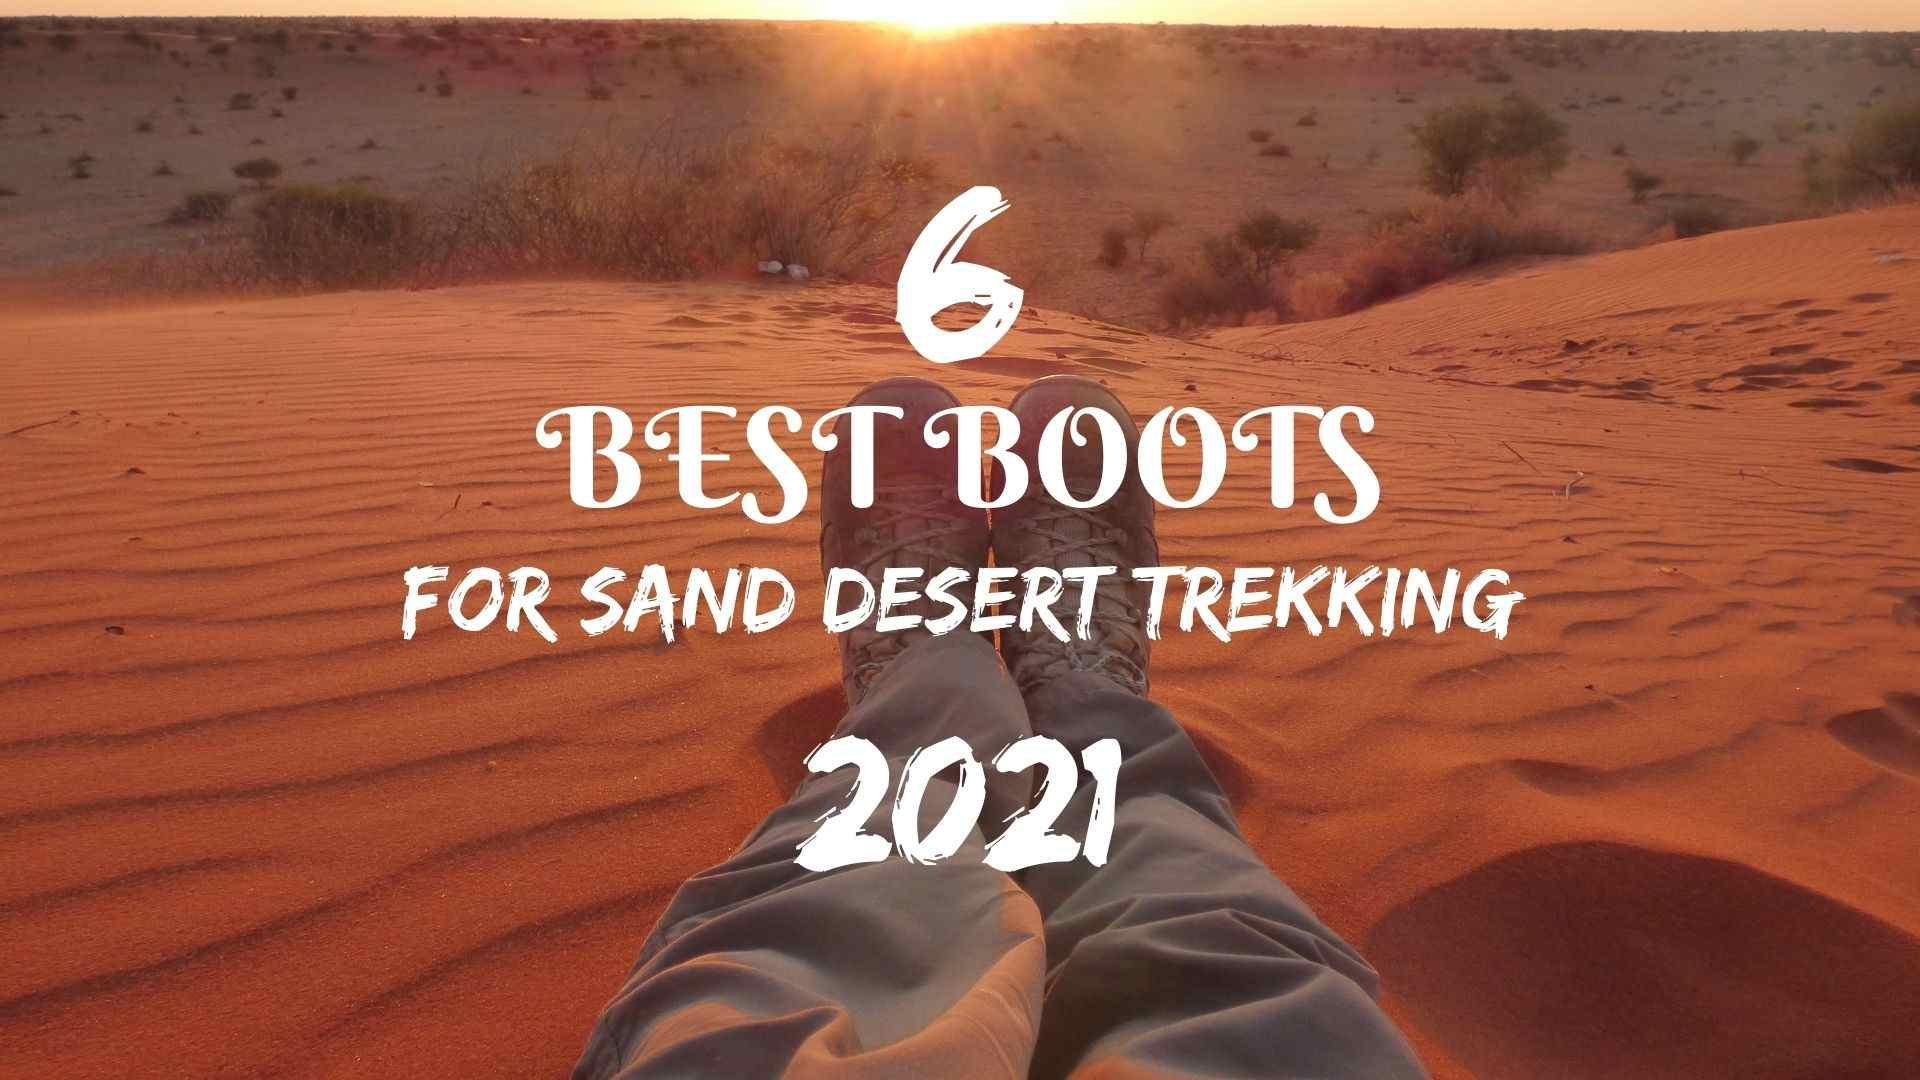 Best boots for sand desert trekking in 2021